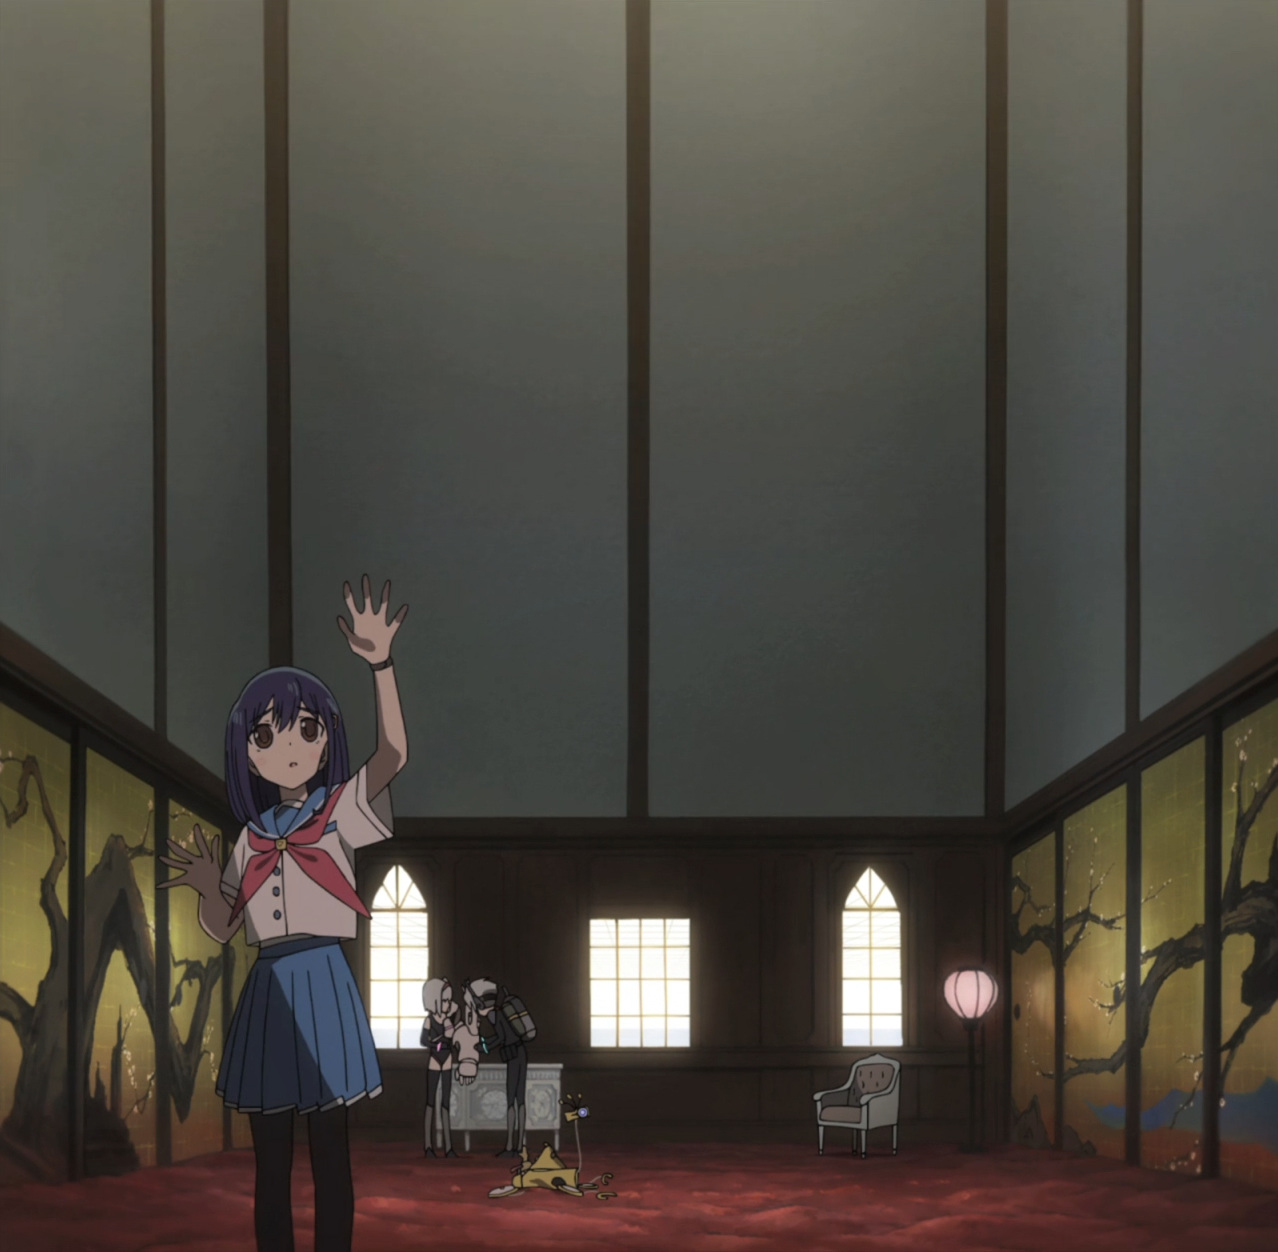 horriblesubs-flip-flappers-09-720p-mkv_snapshot_08-51_2016-12-01_09-11-28_stitch4